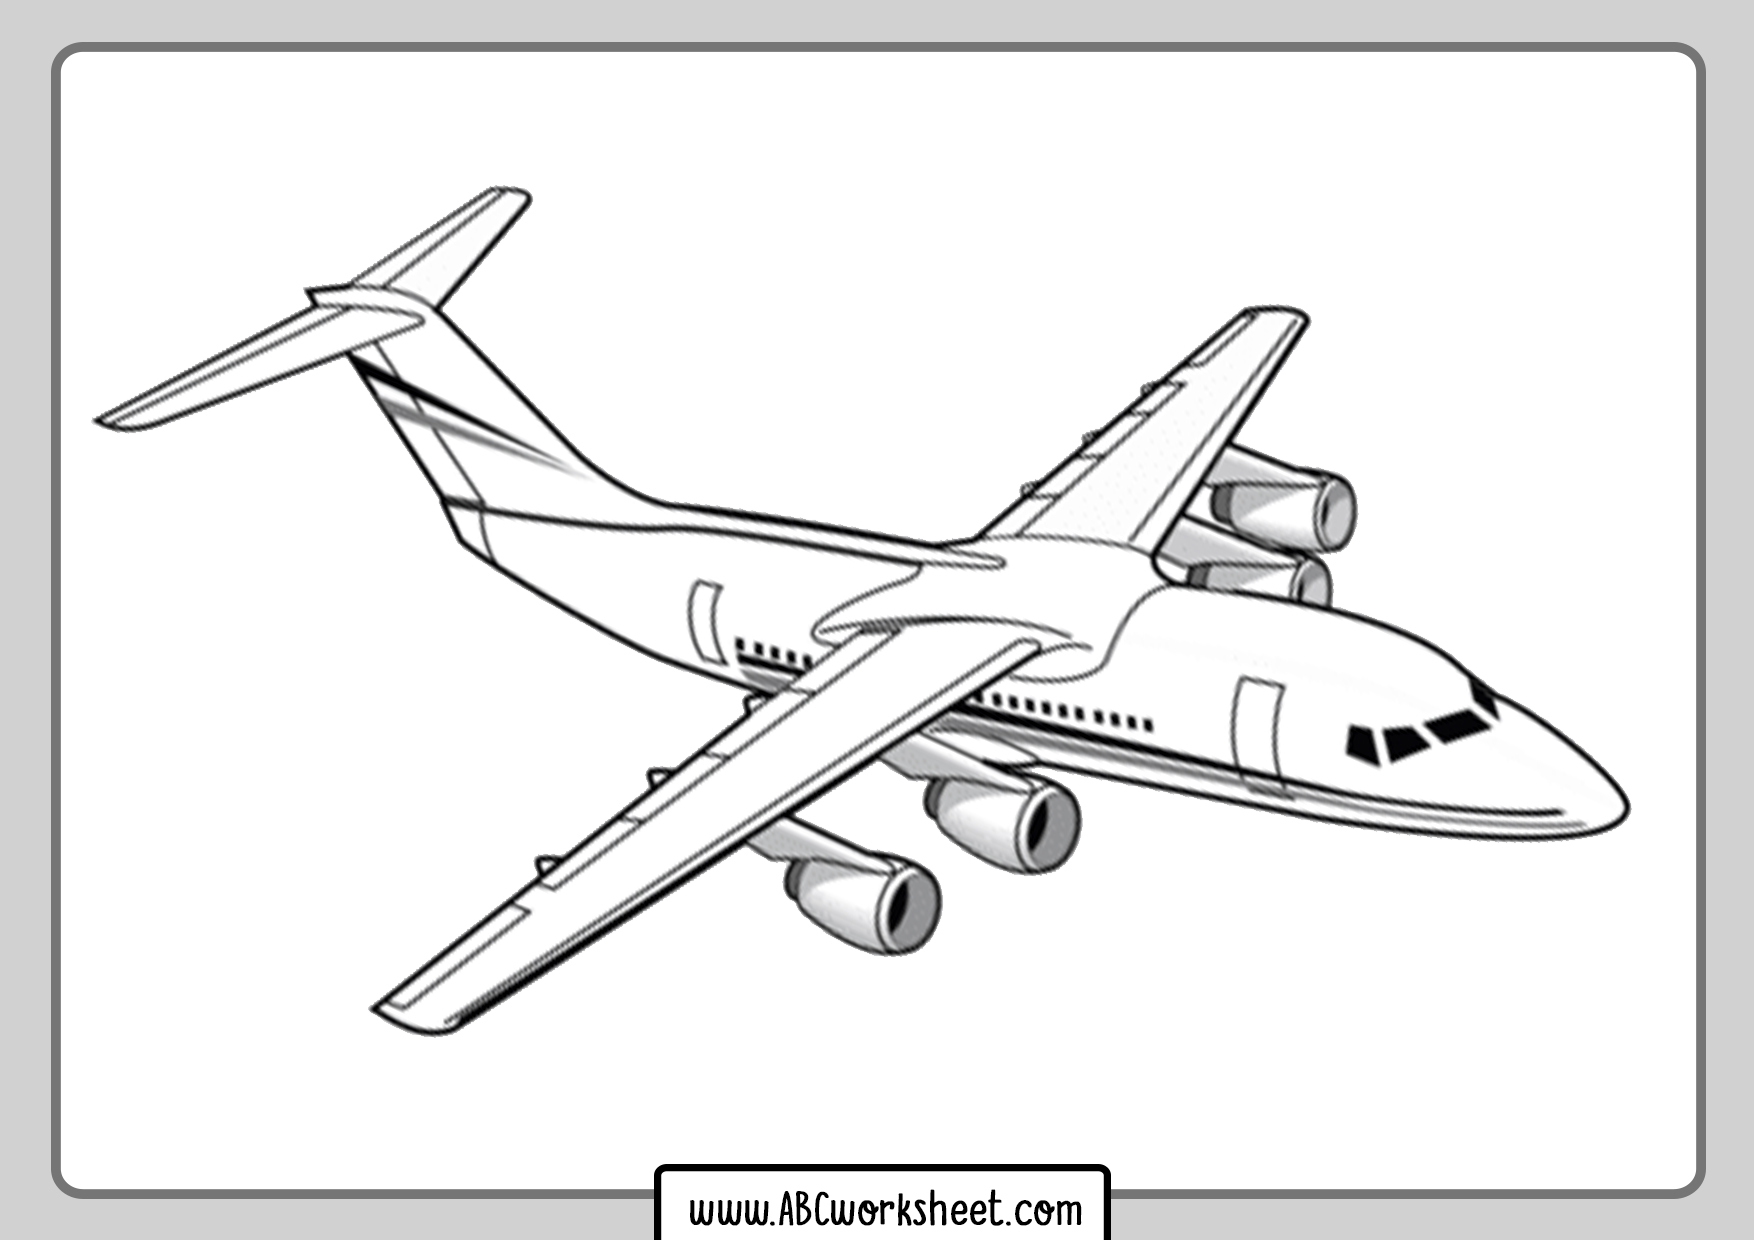 air plane coloring pages cartoon plane drawing at getdrawings free download air coloring pages plane